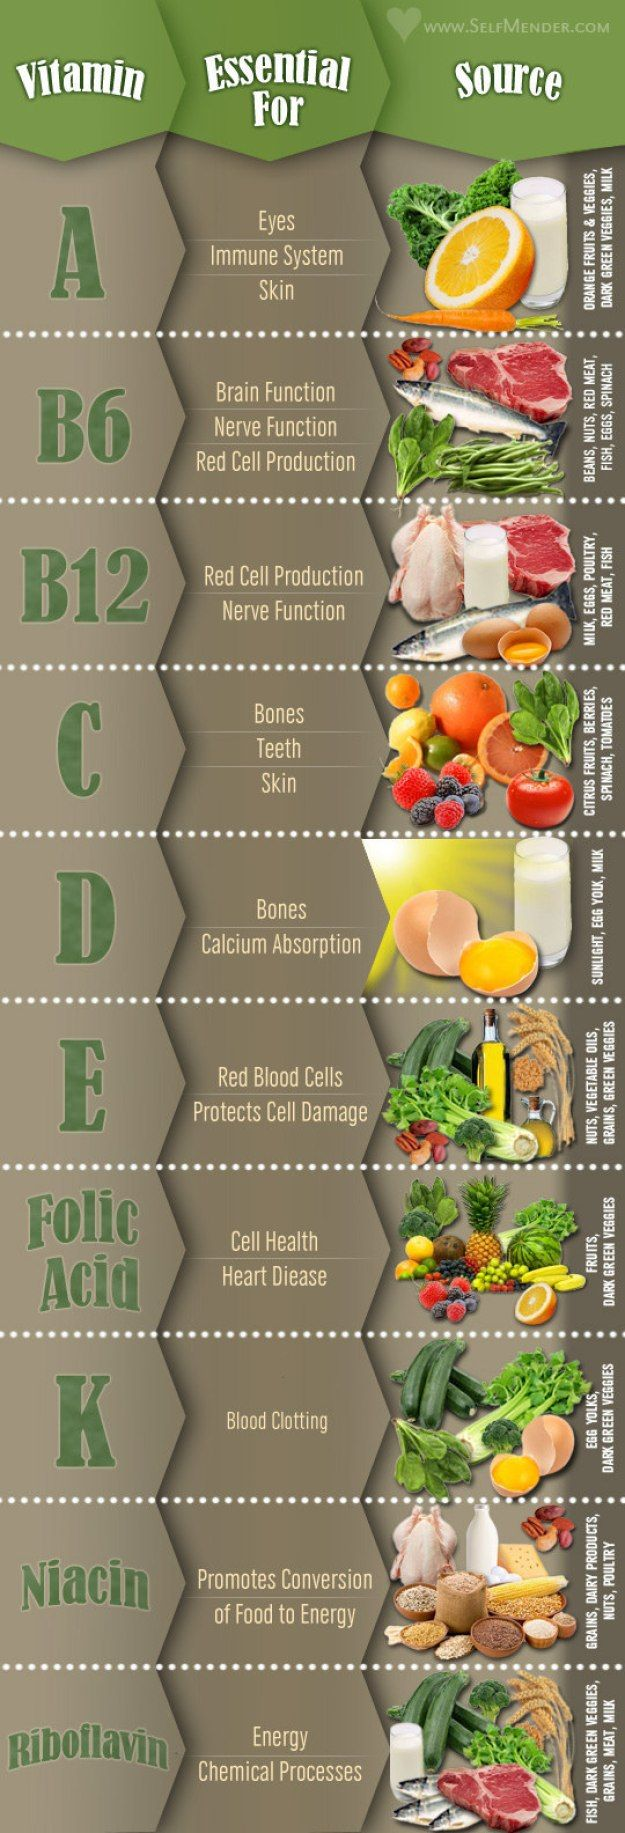 *Tips for Days* 24 Must-See Diagrams That Will Make Eating Healthy Super Easy - NewsLinQ